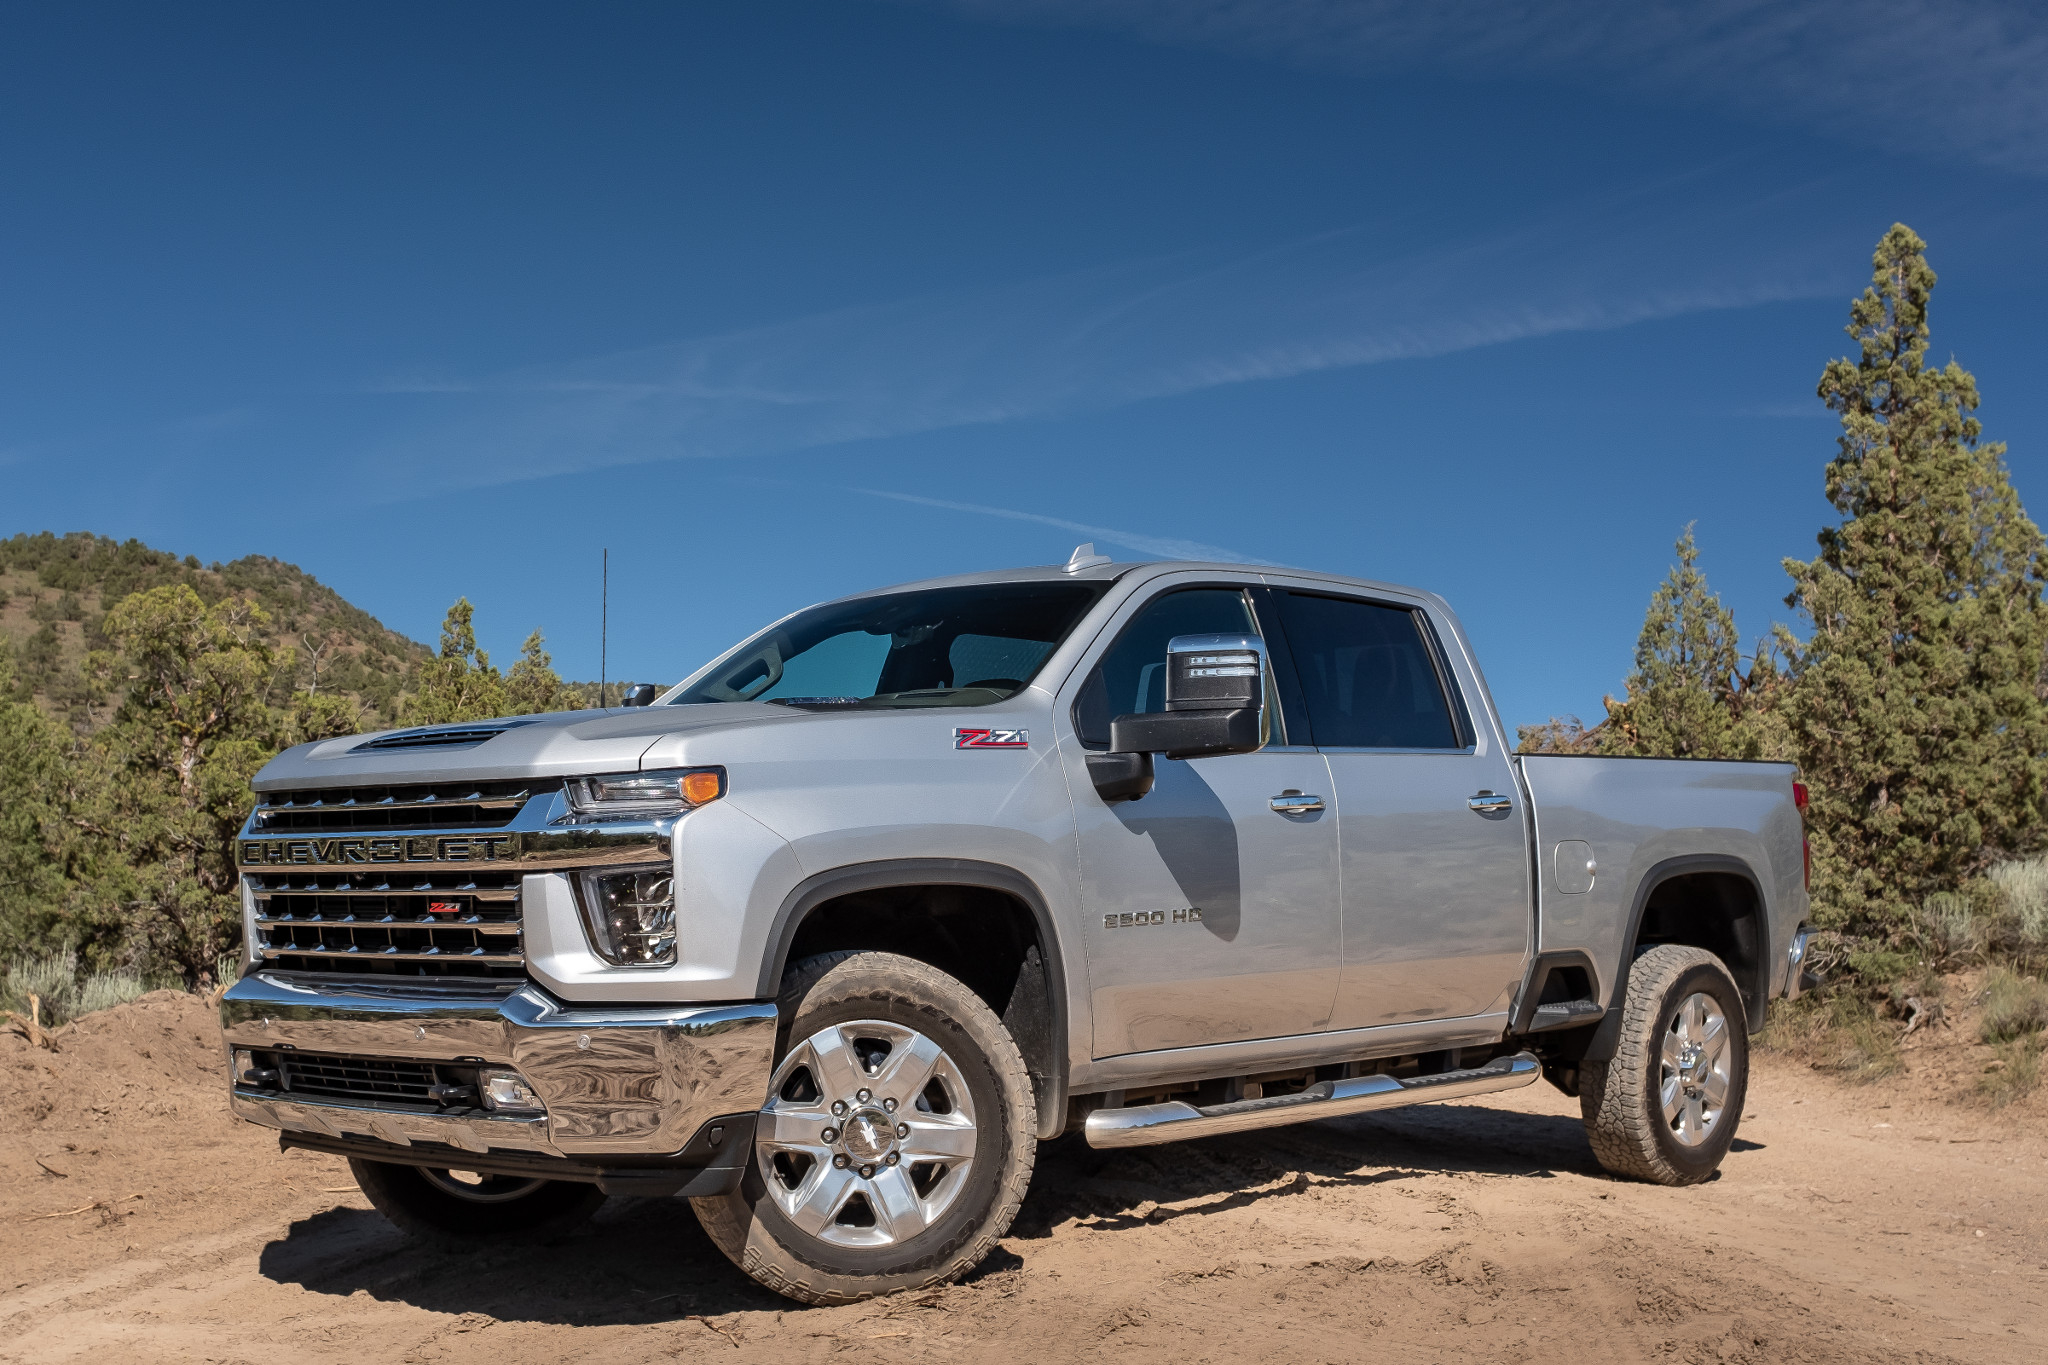 All The Pickup Truck News: 2020 Chevy Silverado 2500/3500 Is 2021 Chevy Silverado 2500 Length, Msrp, Maintenance Schedule